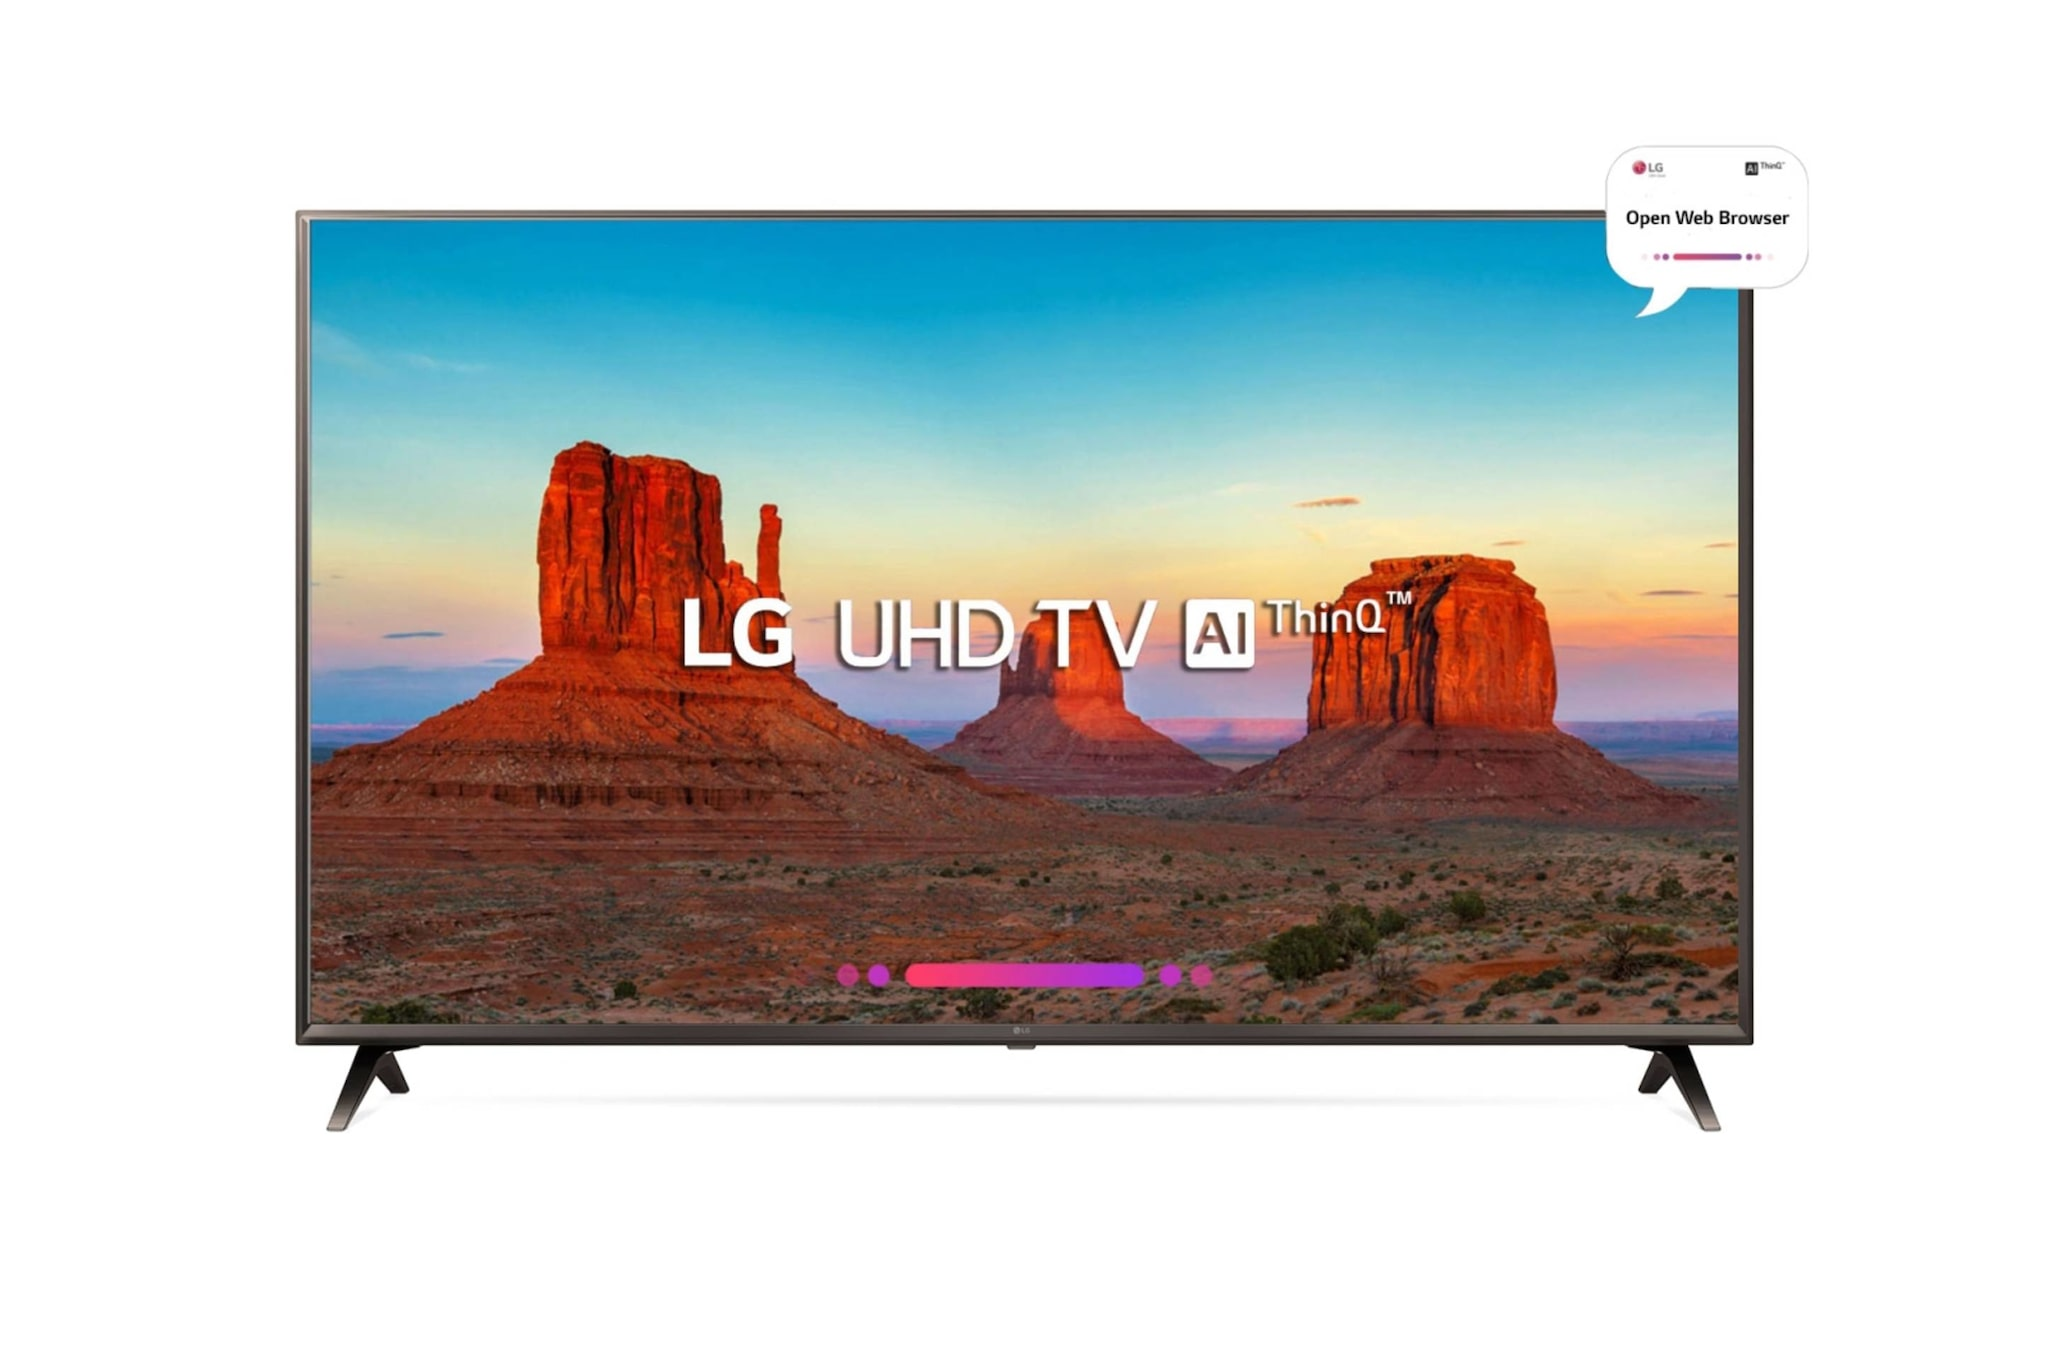 LG 138cm (55) Ultra HD Smart TV (10000 Price Difference + Freebies)